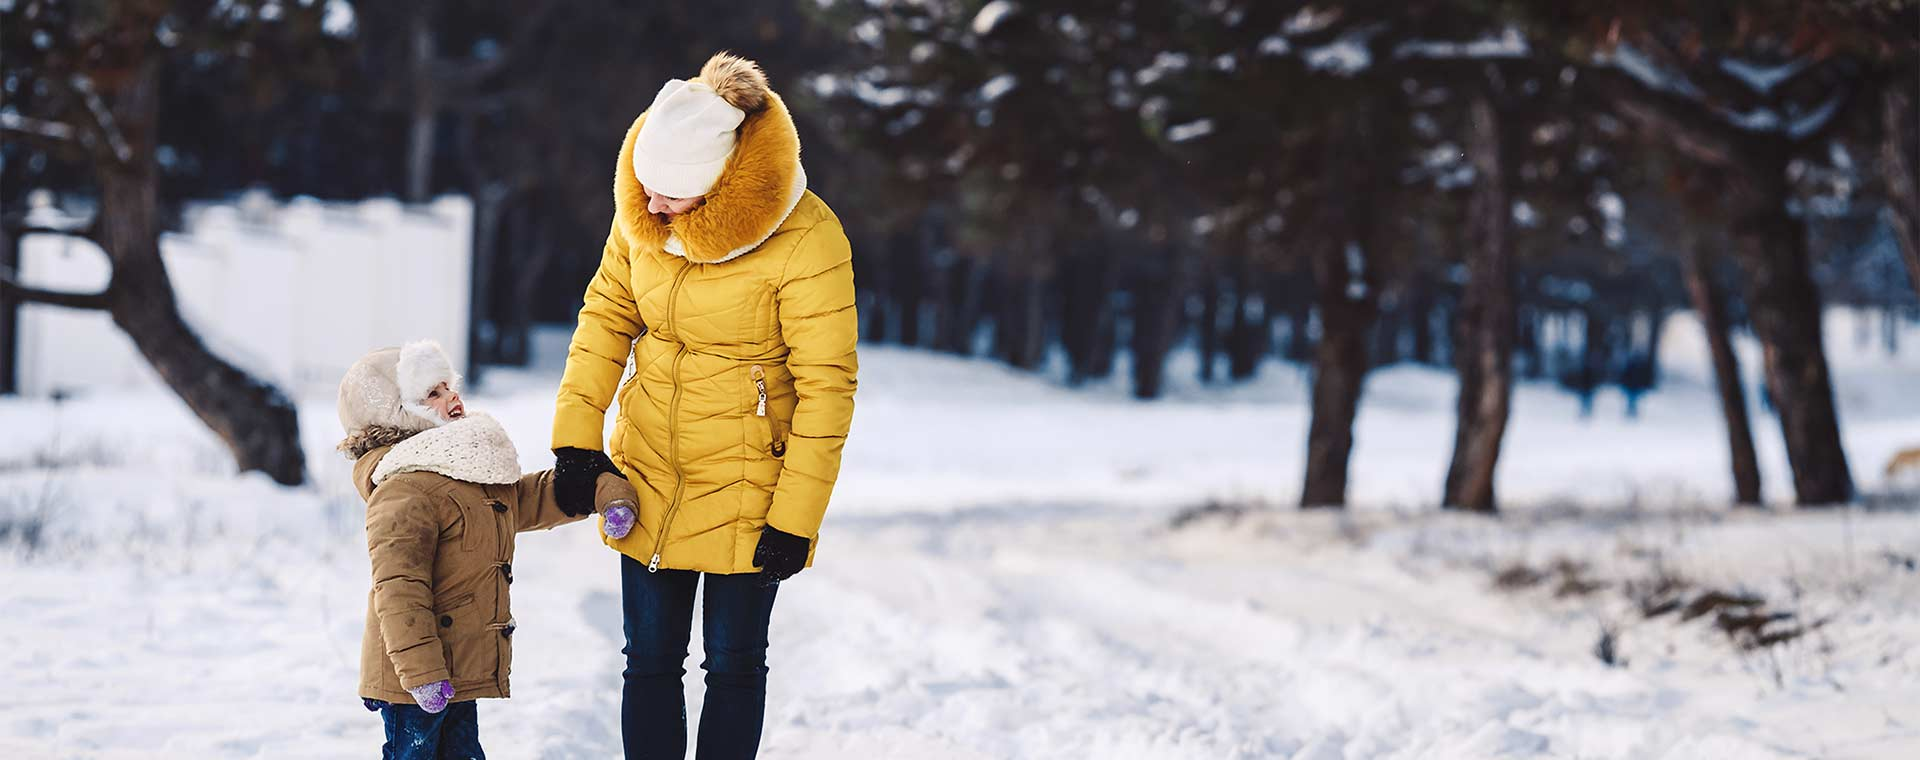 A mother in a yellow, puffy winter coat and her daughter in a light brown, puffy winter coat are walking in a forest. There is snow on the ground and in the trees.